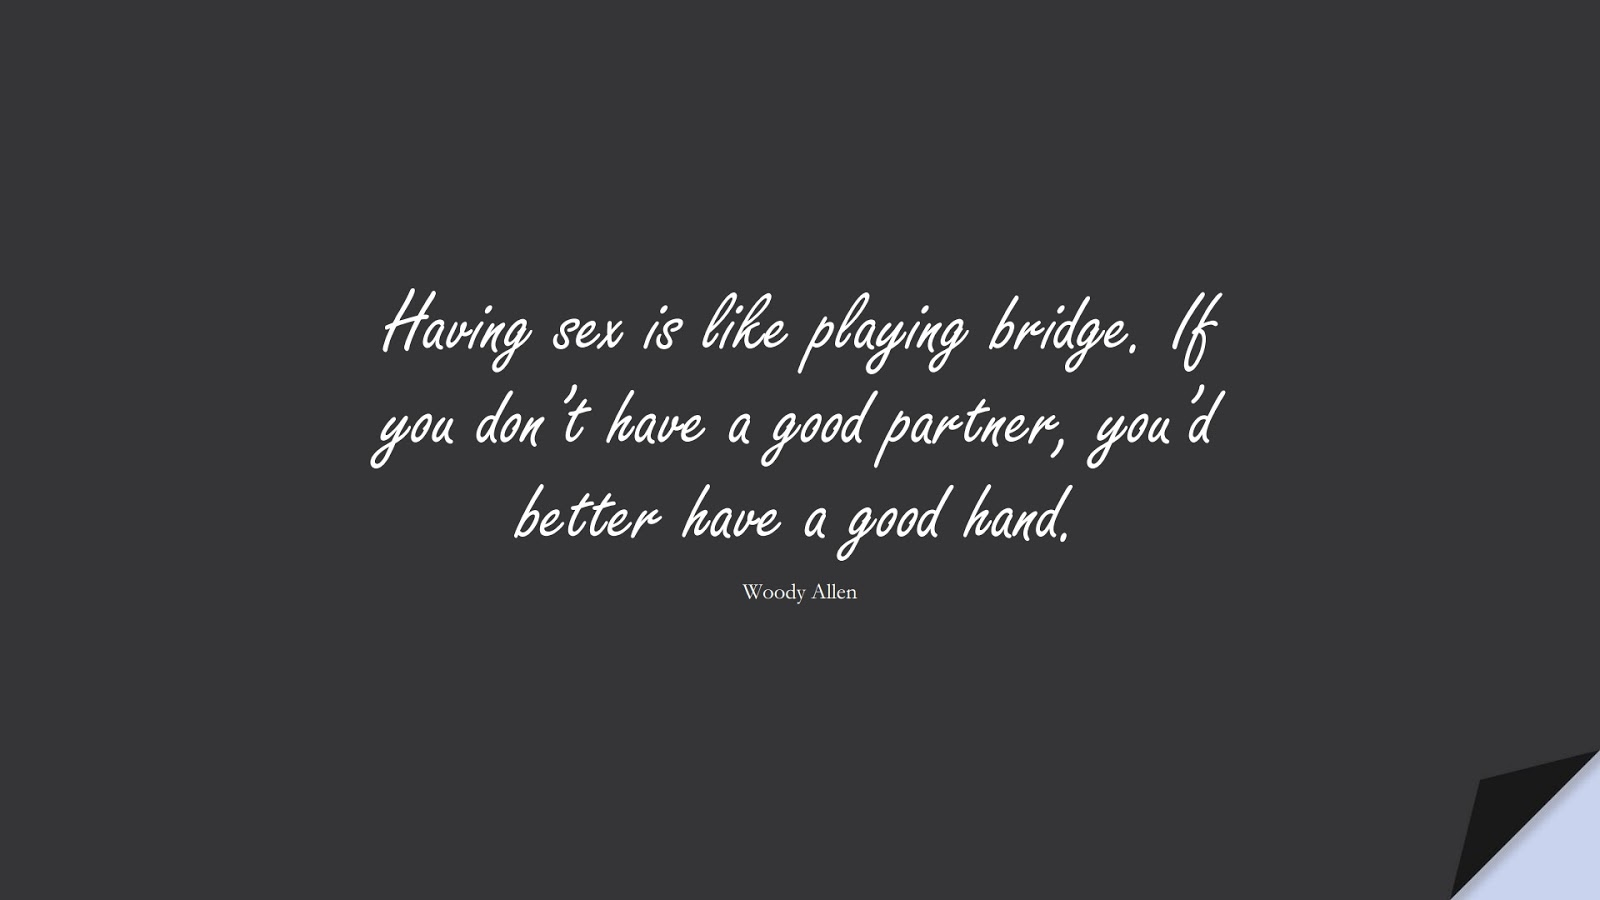 Having sex is like playing bridge. If you don't have a good partner, you'd better have a good hand. (Woody Allen);  #IntimacyQuotes